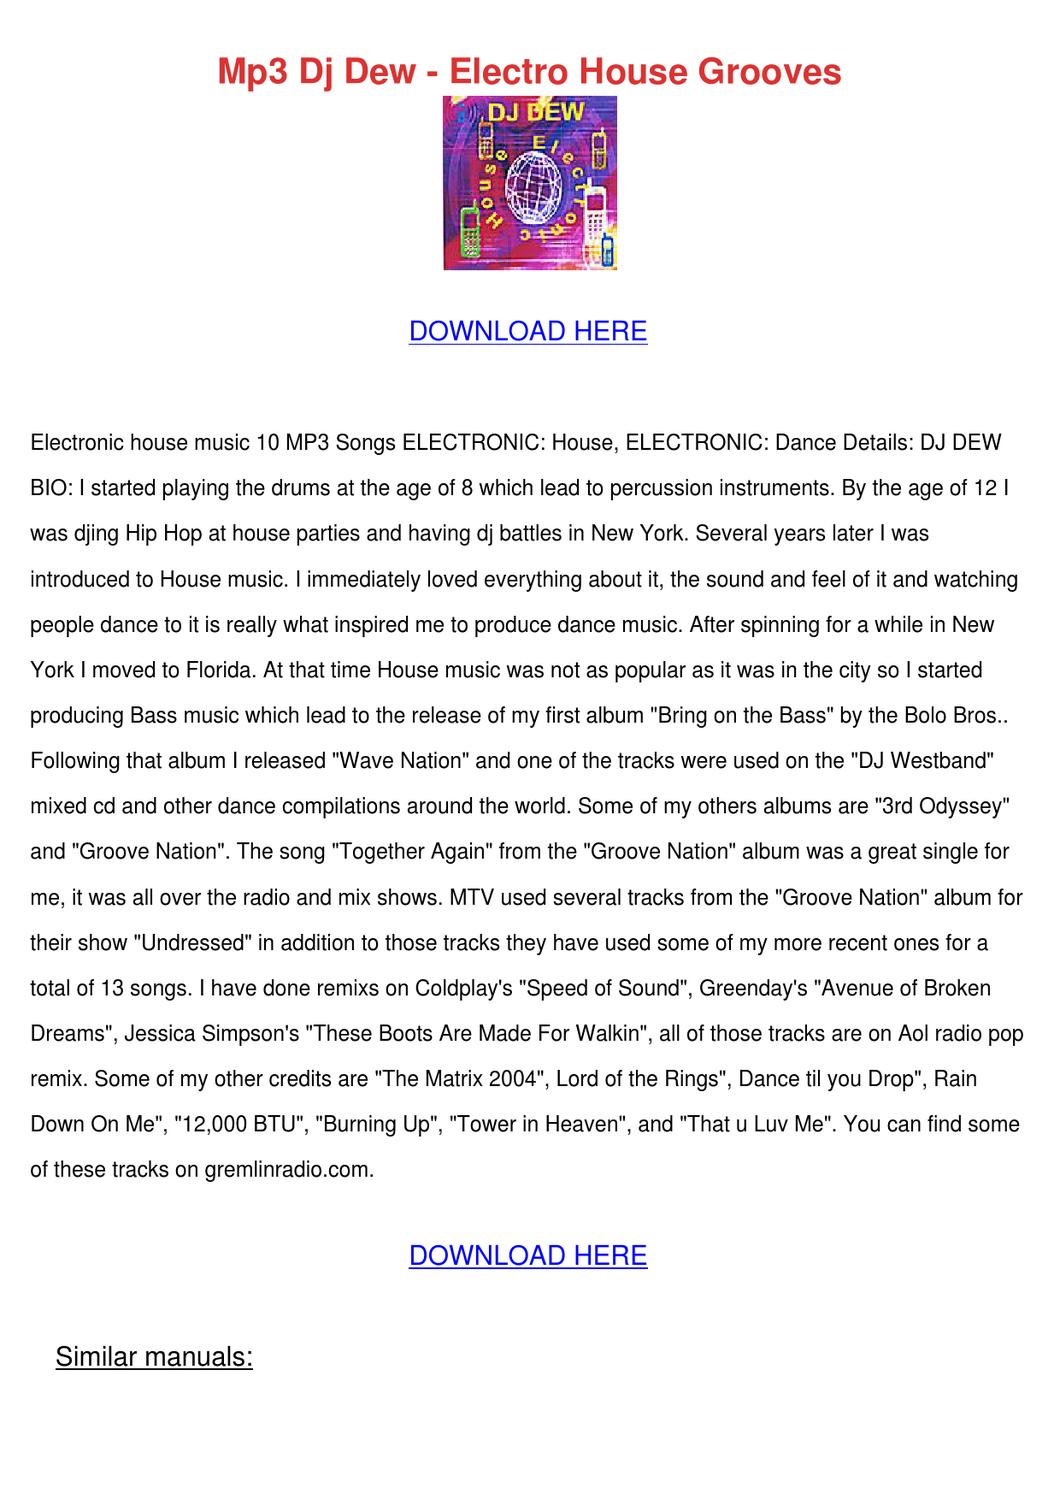 Mp3 Dj Dew Electro House Grooves by LorettaLangston - issuu